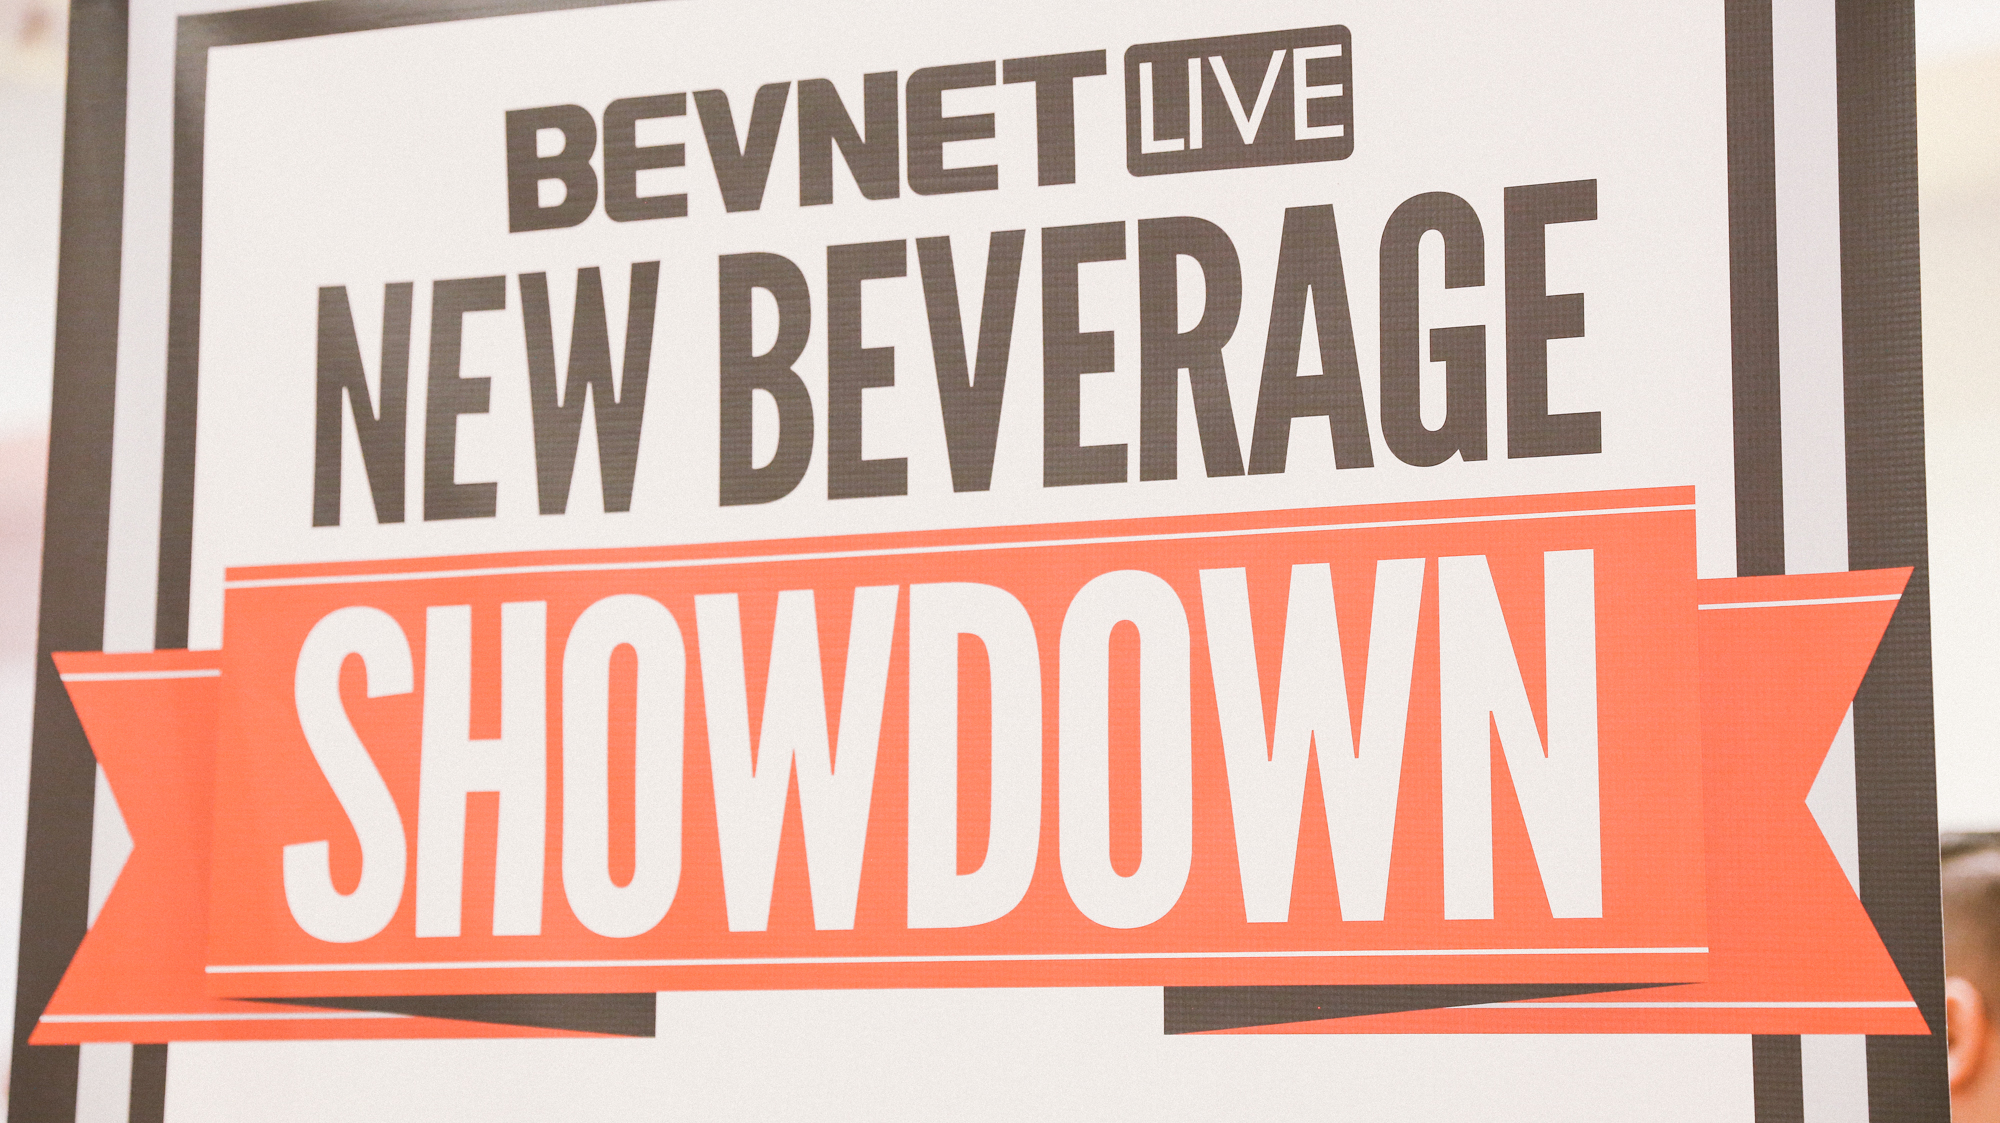 BevNET Live Winter 2015: New Beverage Showdown